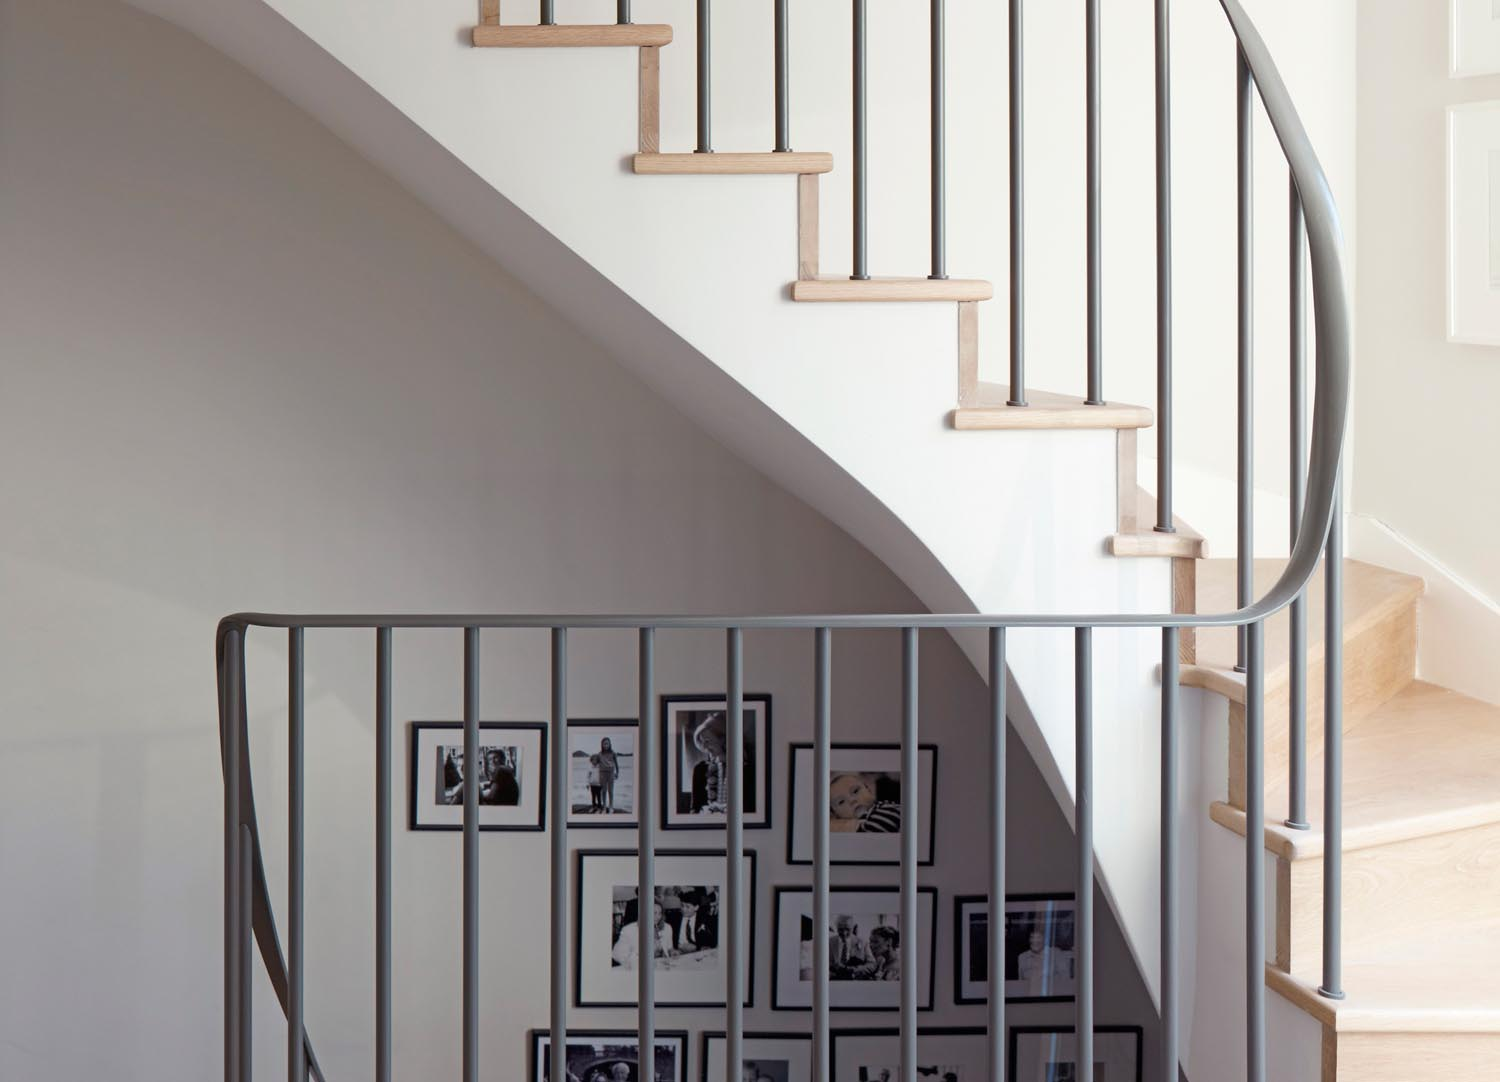 Jill Scholes Interior design, mews house, staircase with metal balustrade and family photo gallery